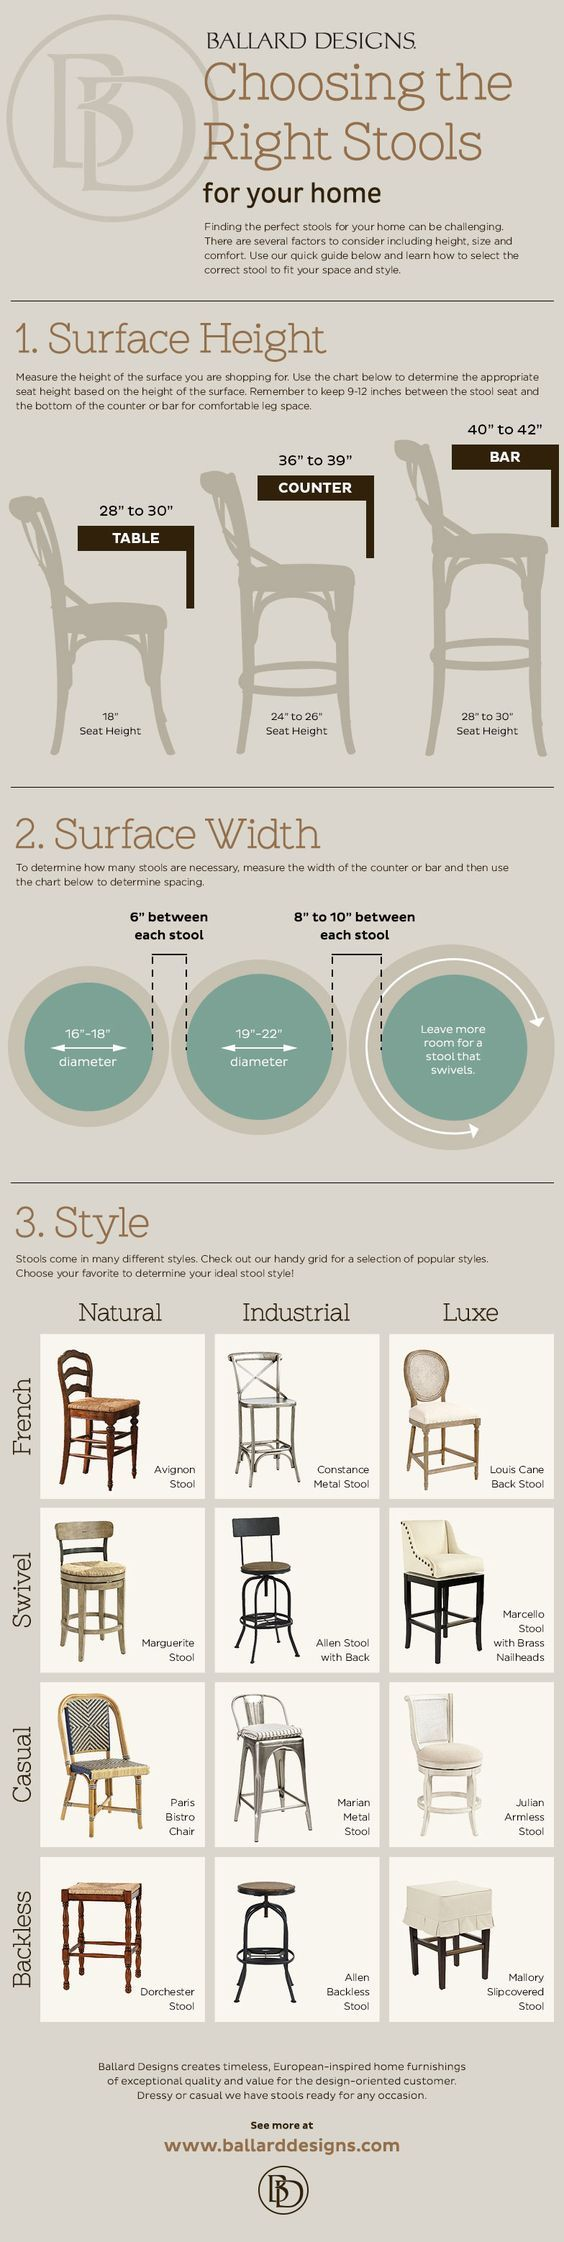 How to choose the right stool size